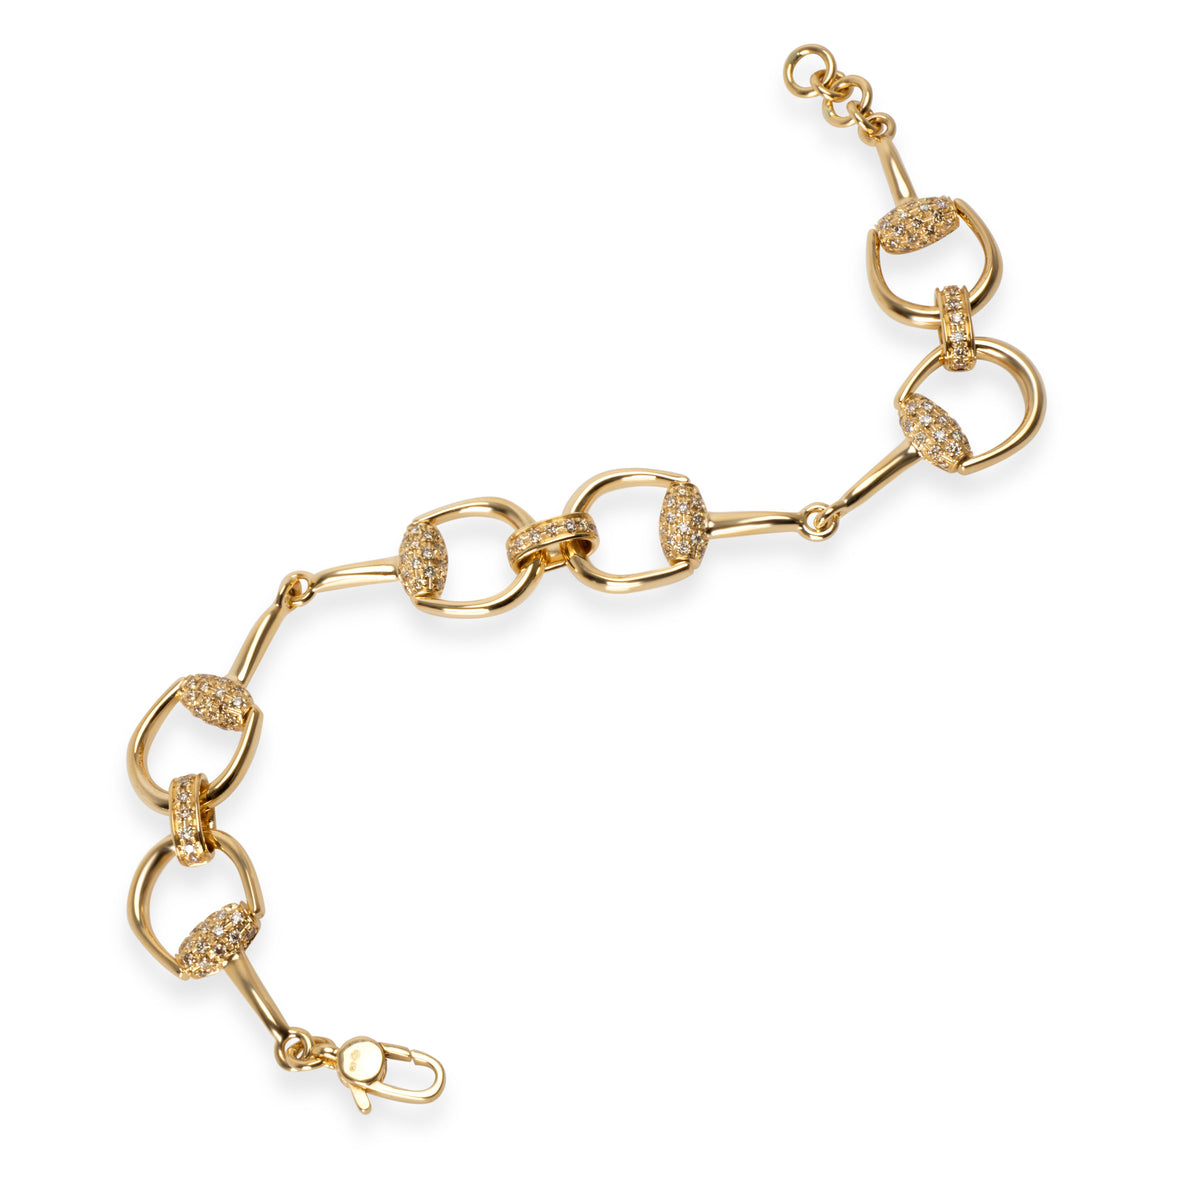 Gucci Horsebit Diamond  Bracelet in 18K Yellow Gold 1.04 CTW